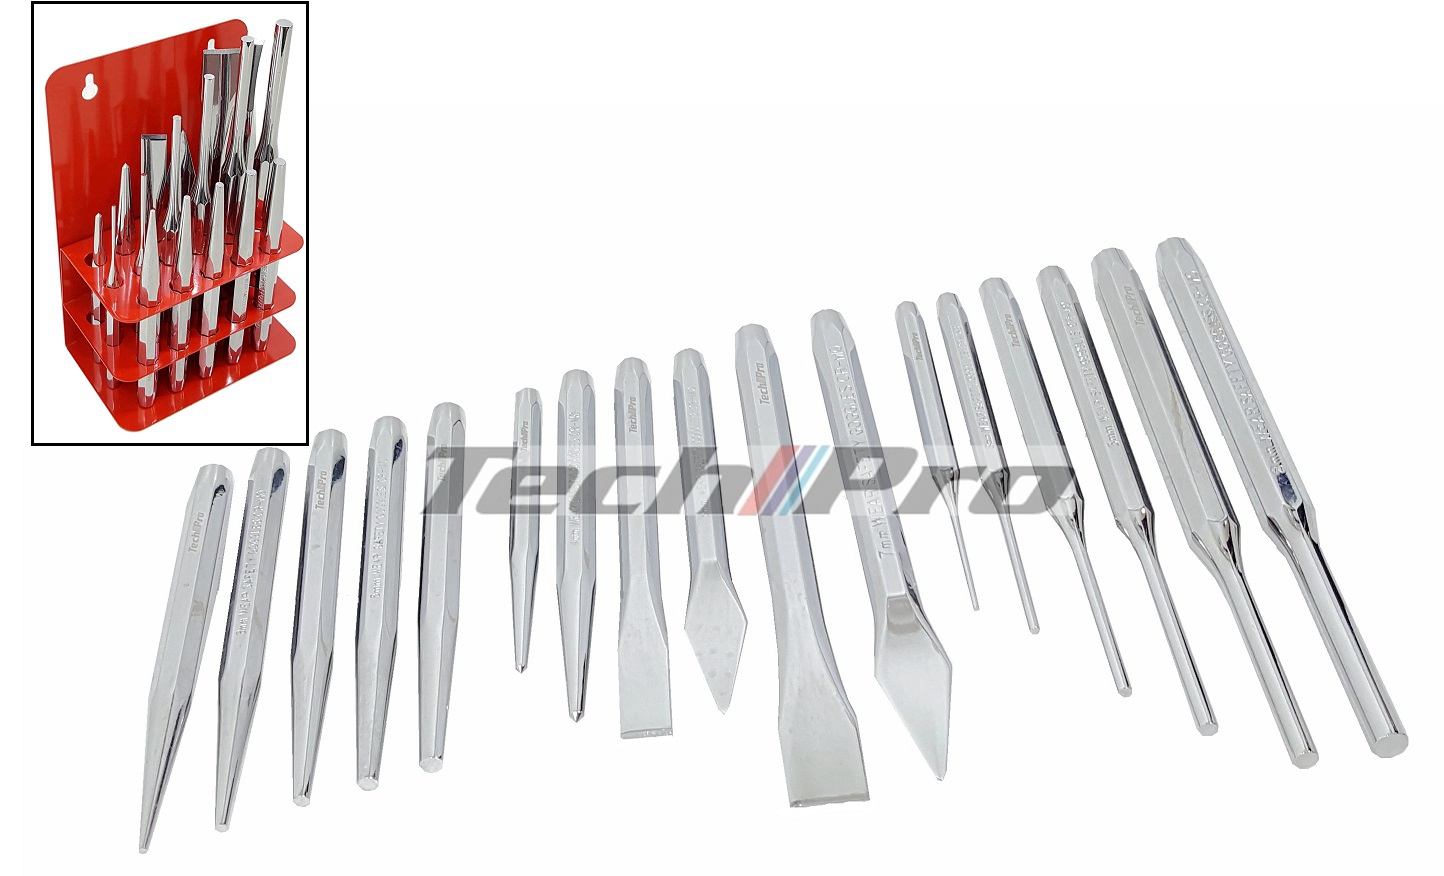 HT-009 - Chisel & Punch Set - 17 pcs